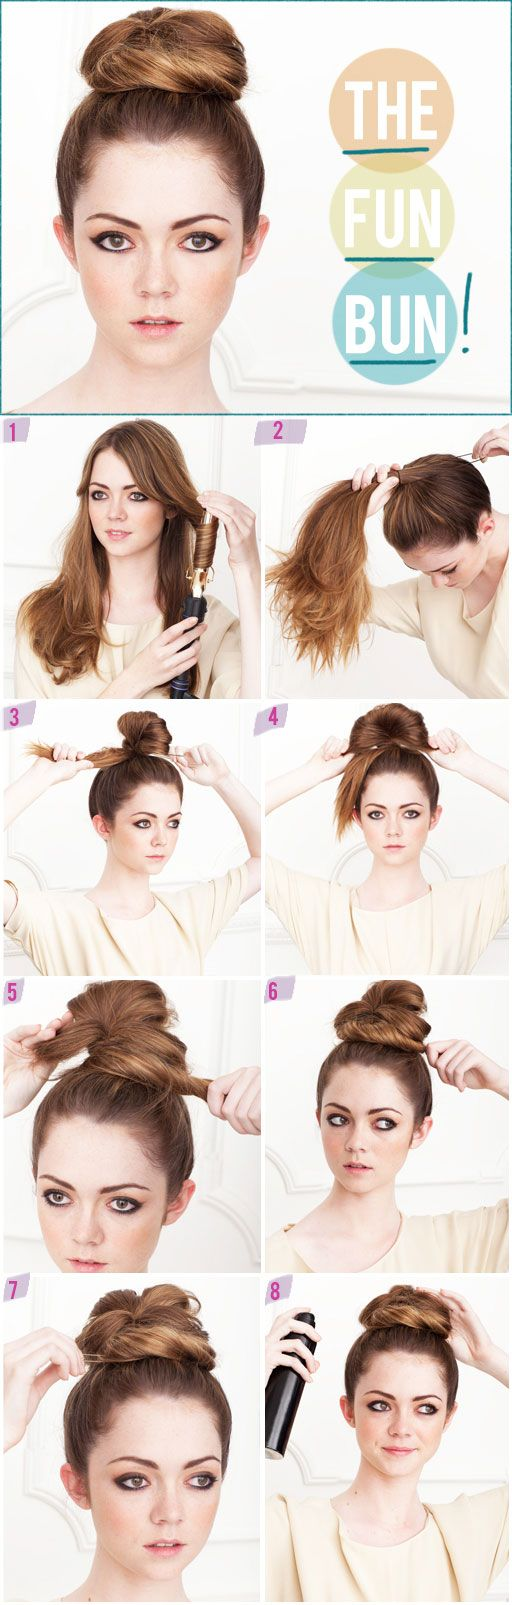 1. Use a 1″ curling iron to curl everything under. This will make it easier to tuck pieces into the bun  2. Flip your hair over and gather everything into a ponytail on top of you head, securing it with an elastic ponytail holder.    Step 3: On the last time around with the ponytail holder, only pull the ponytail through half way.  4. Take the loop you've created and spread it out. Just widen it and allow it to be somewhat messy.  5. Take the tail end and wrap it around the ponytail base.